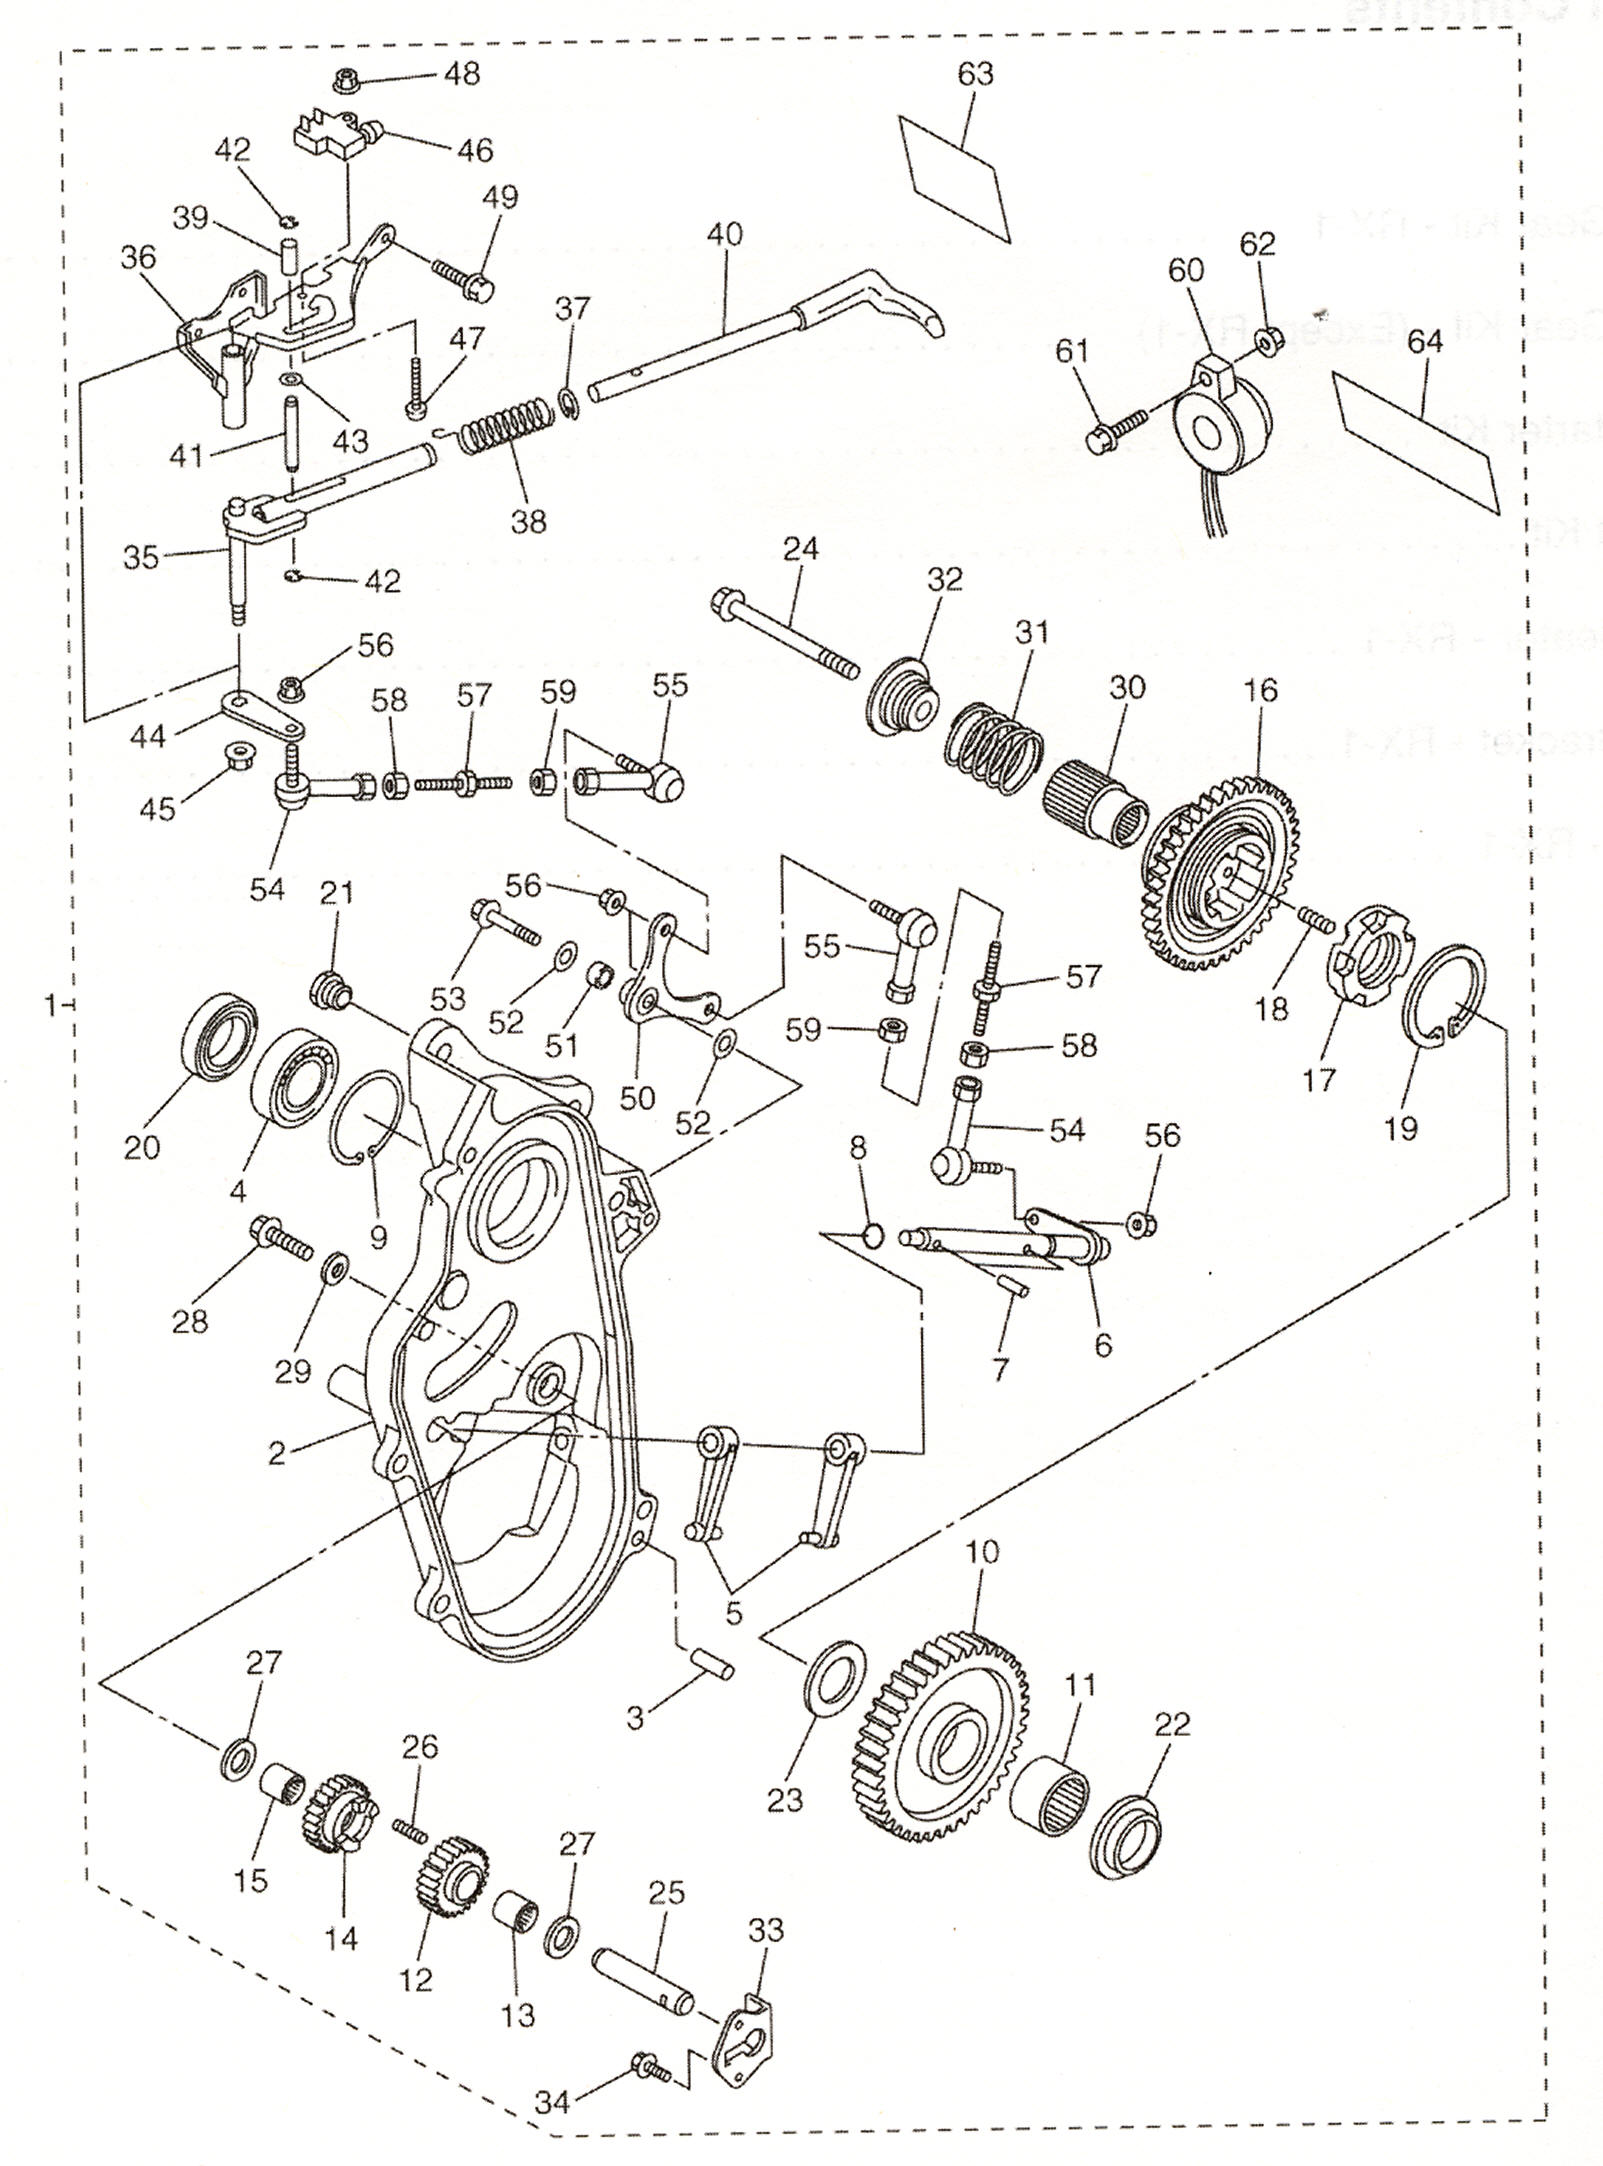 Manuals in addition Gas tank seat and taillight assembly furthermore Yamaha 50cc 2 Stroke Diagram in addition Nerf Bars With   Heel Guards as well Replacement Clutch Cables For Honda. on arctic cat snowmobile 4 stroke